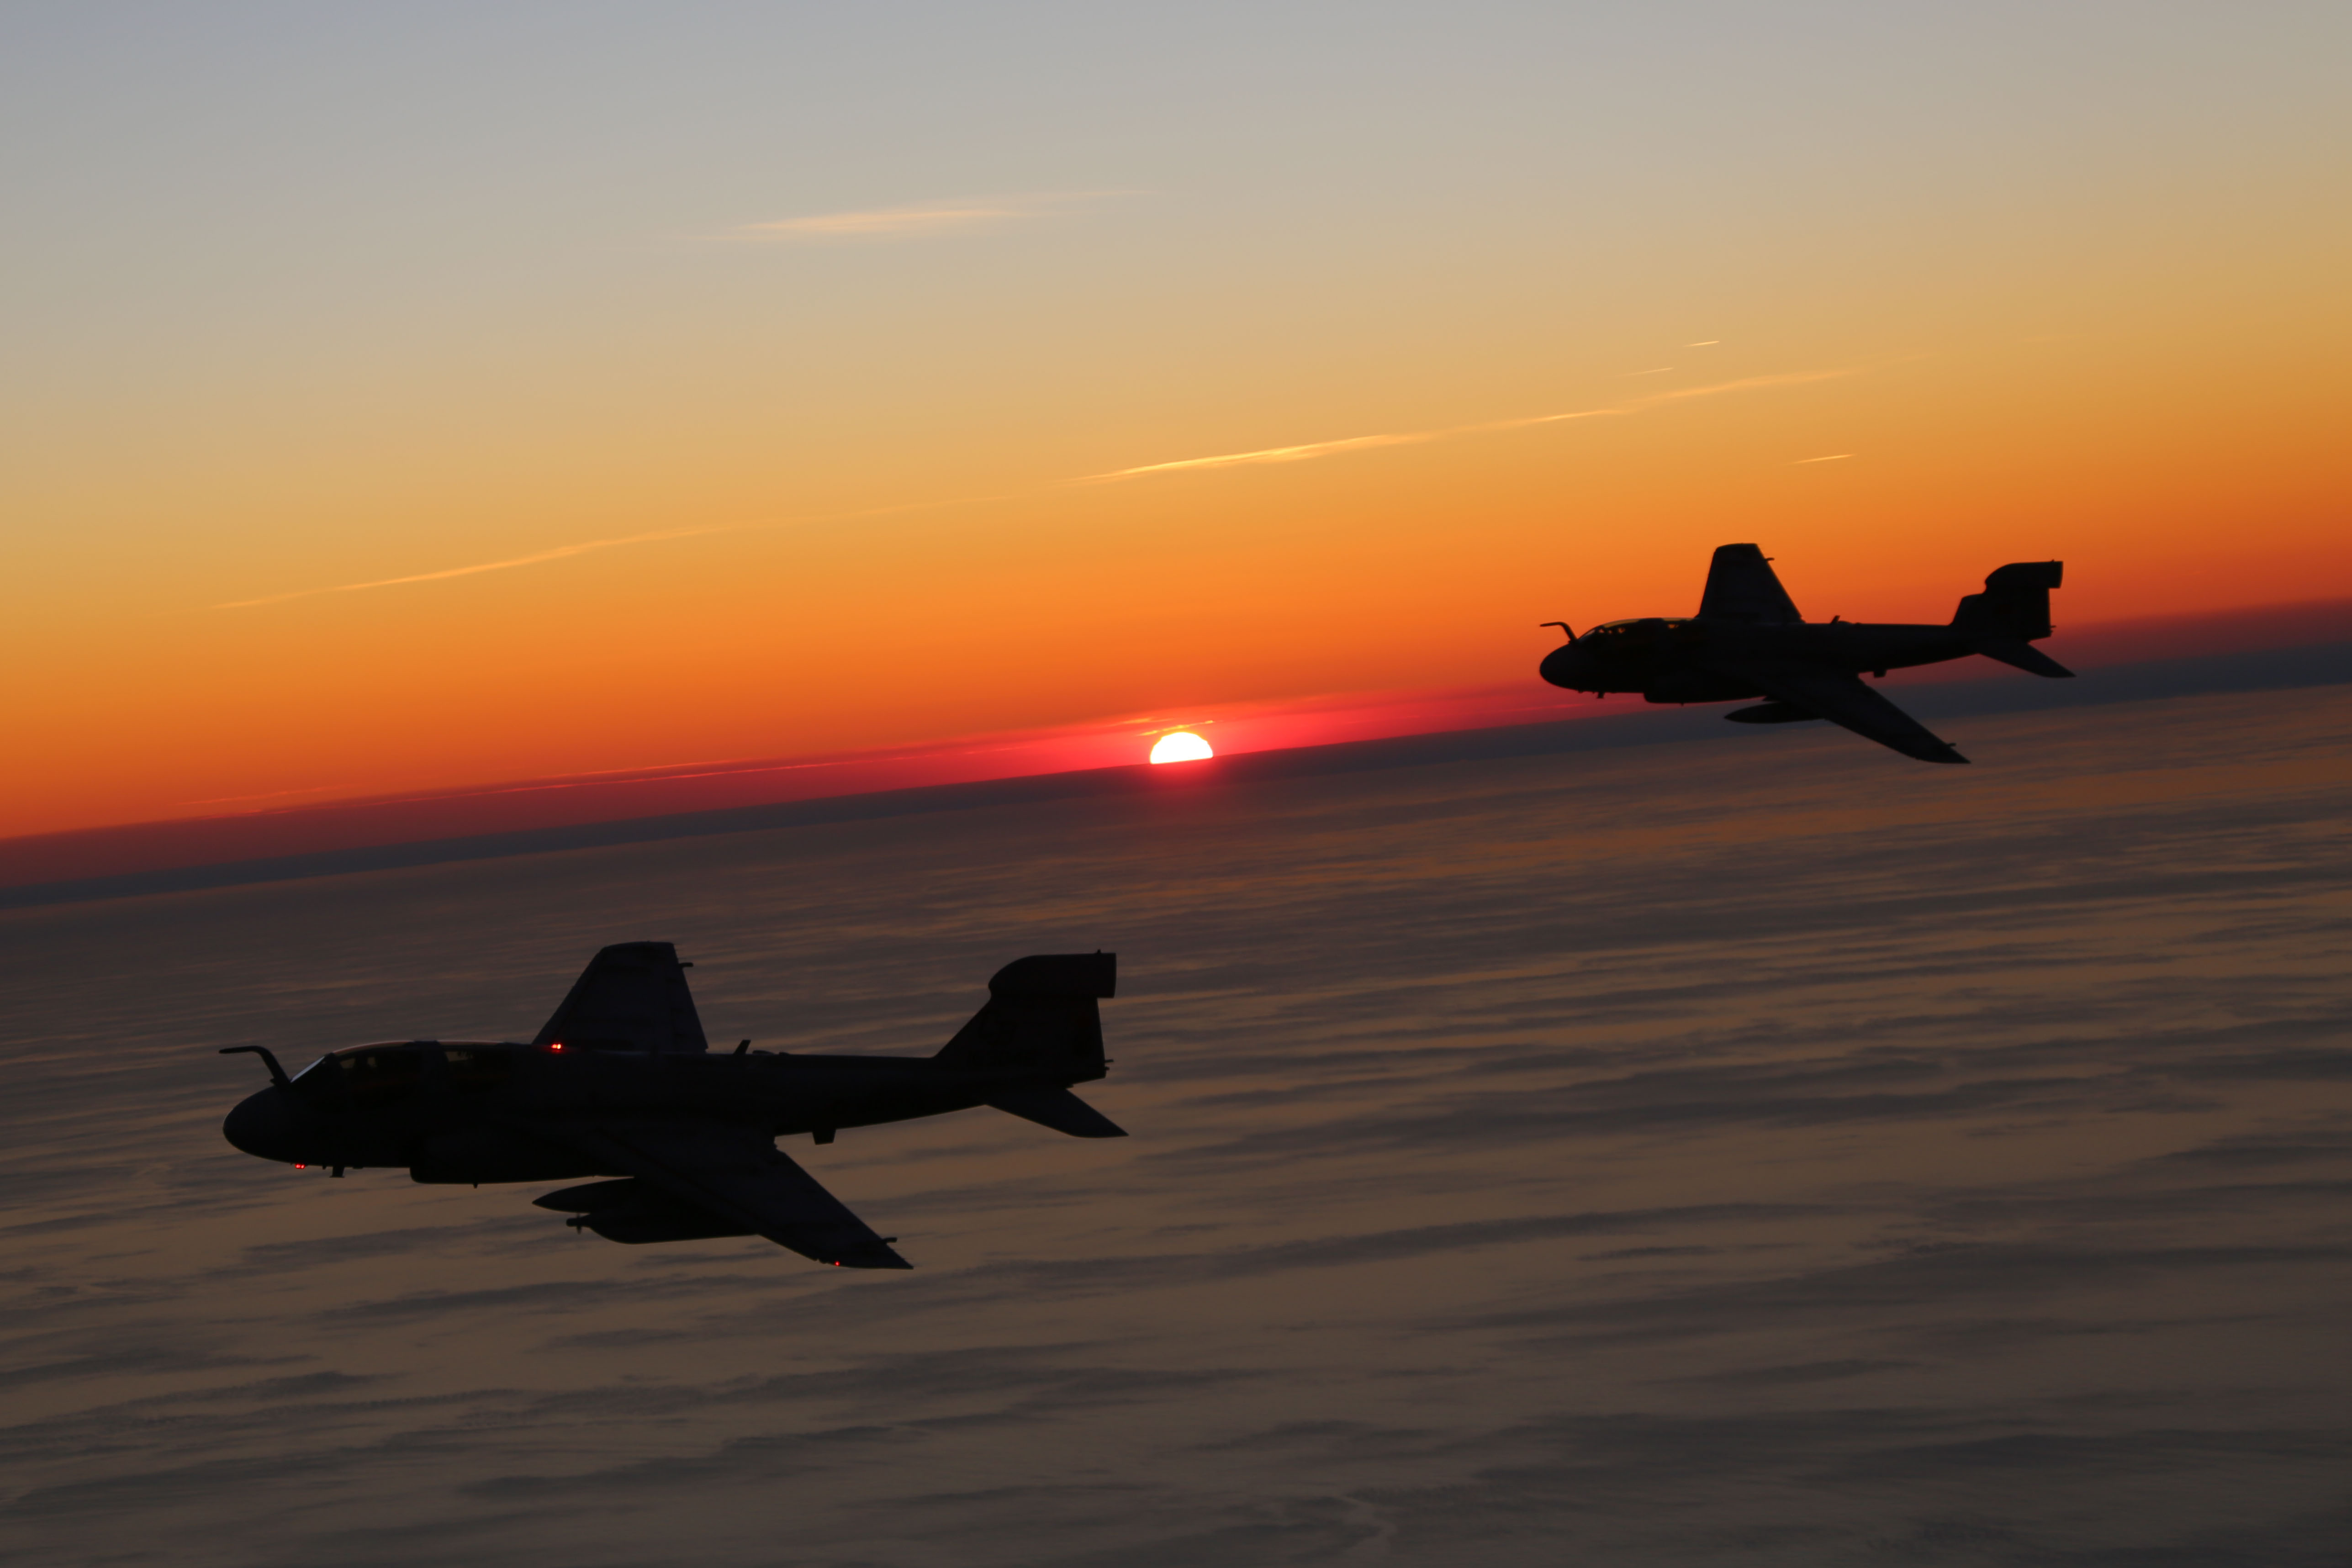 Two EA-6B Prowlers, belonging to 2nd Marine Aircraft Wing while conducting aerial maneuvers during an air-to-air refuel training exercise over the Atlantic Ocean on Sept. 14, 2015. US Marine Corps